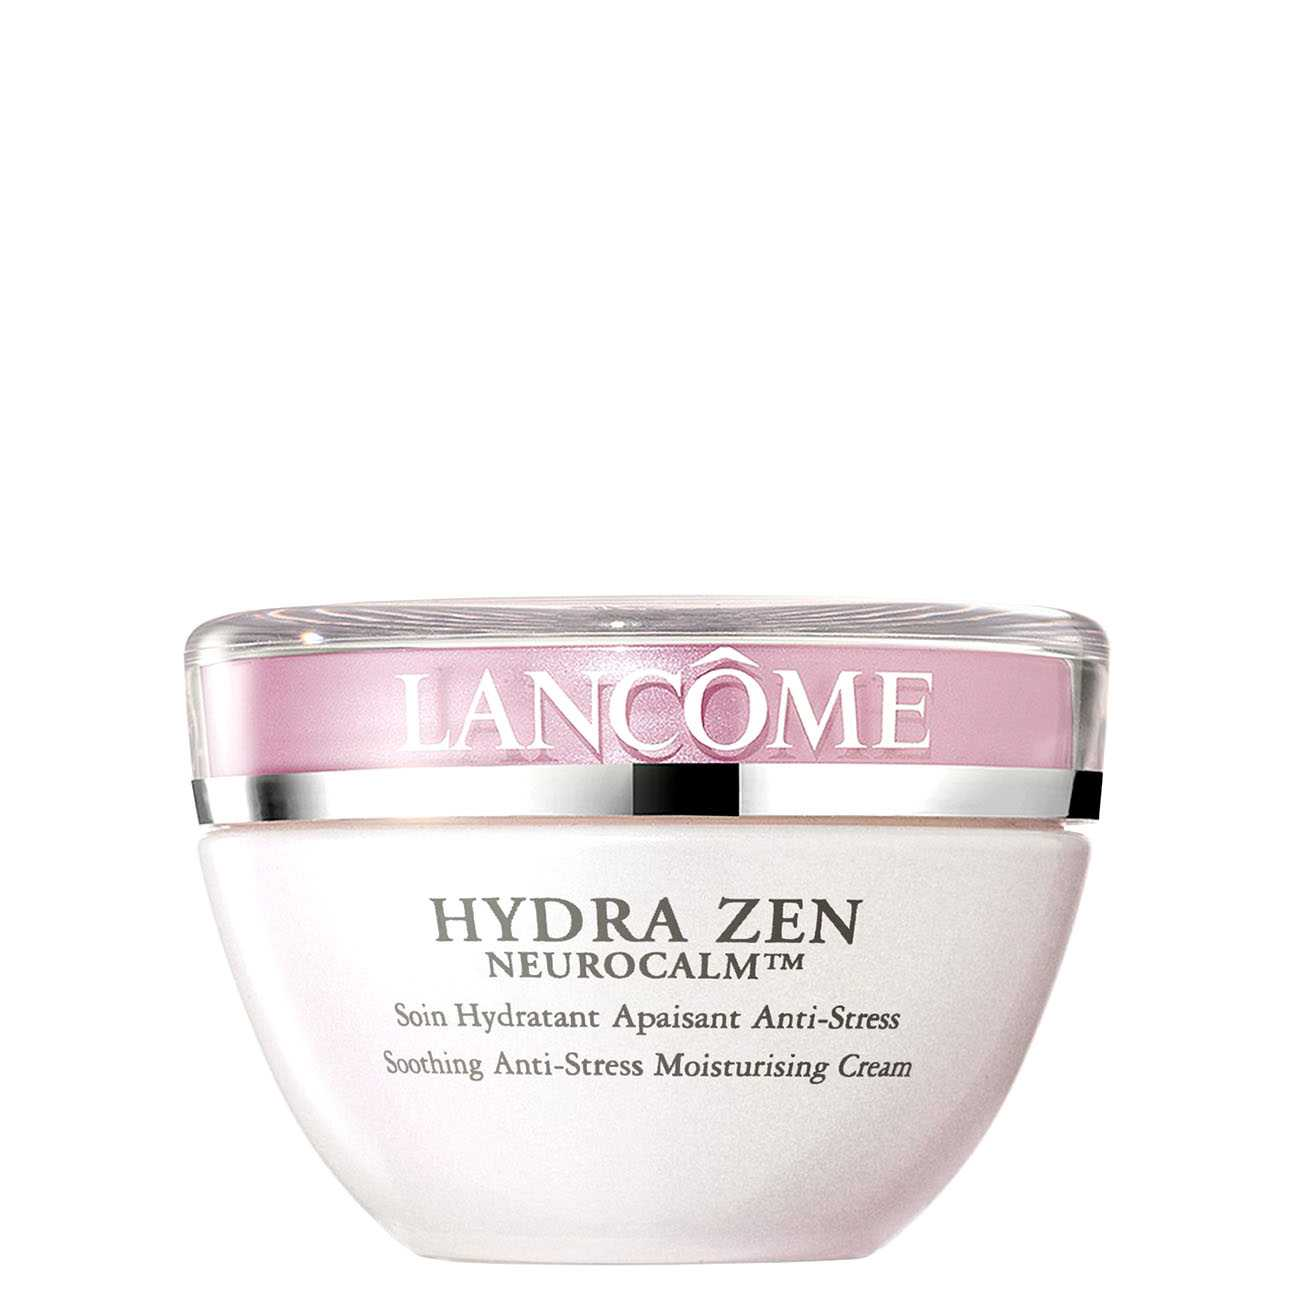 Hydra Zen Neurocalm Soothing Anti-Stress Moisturizing Cream 50 Ml Lancôme imagine 2021 bestvalue.eu